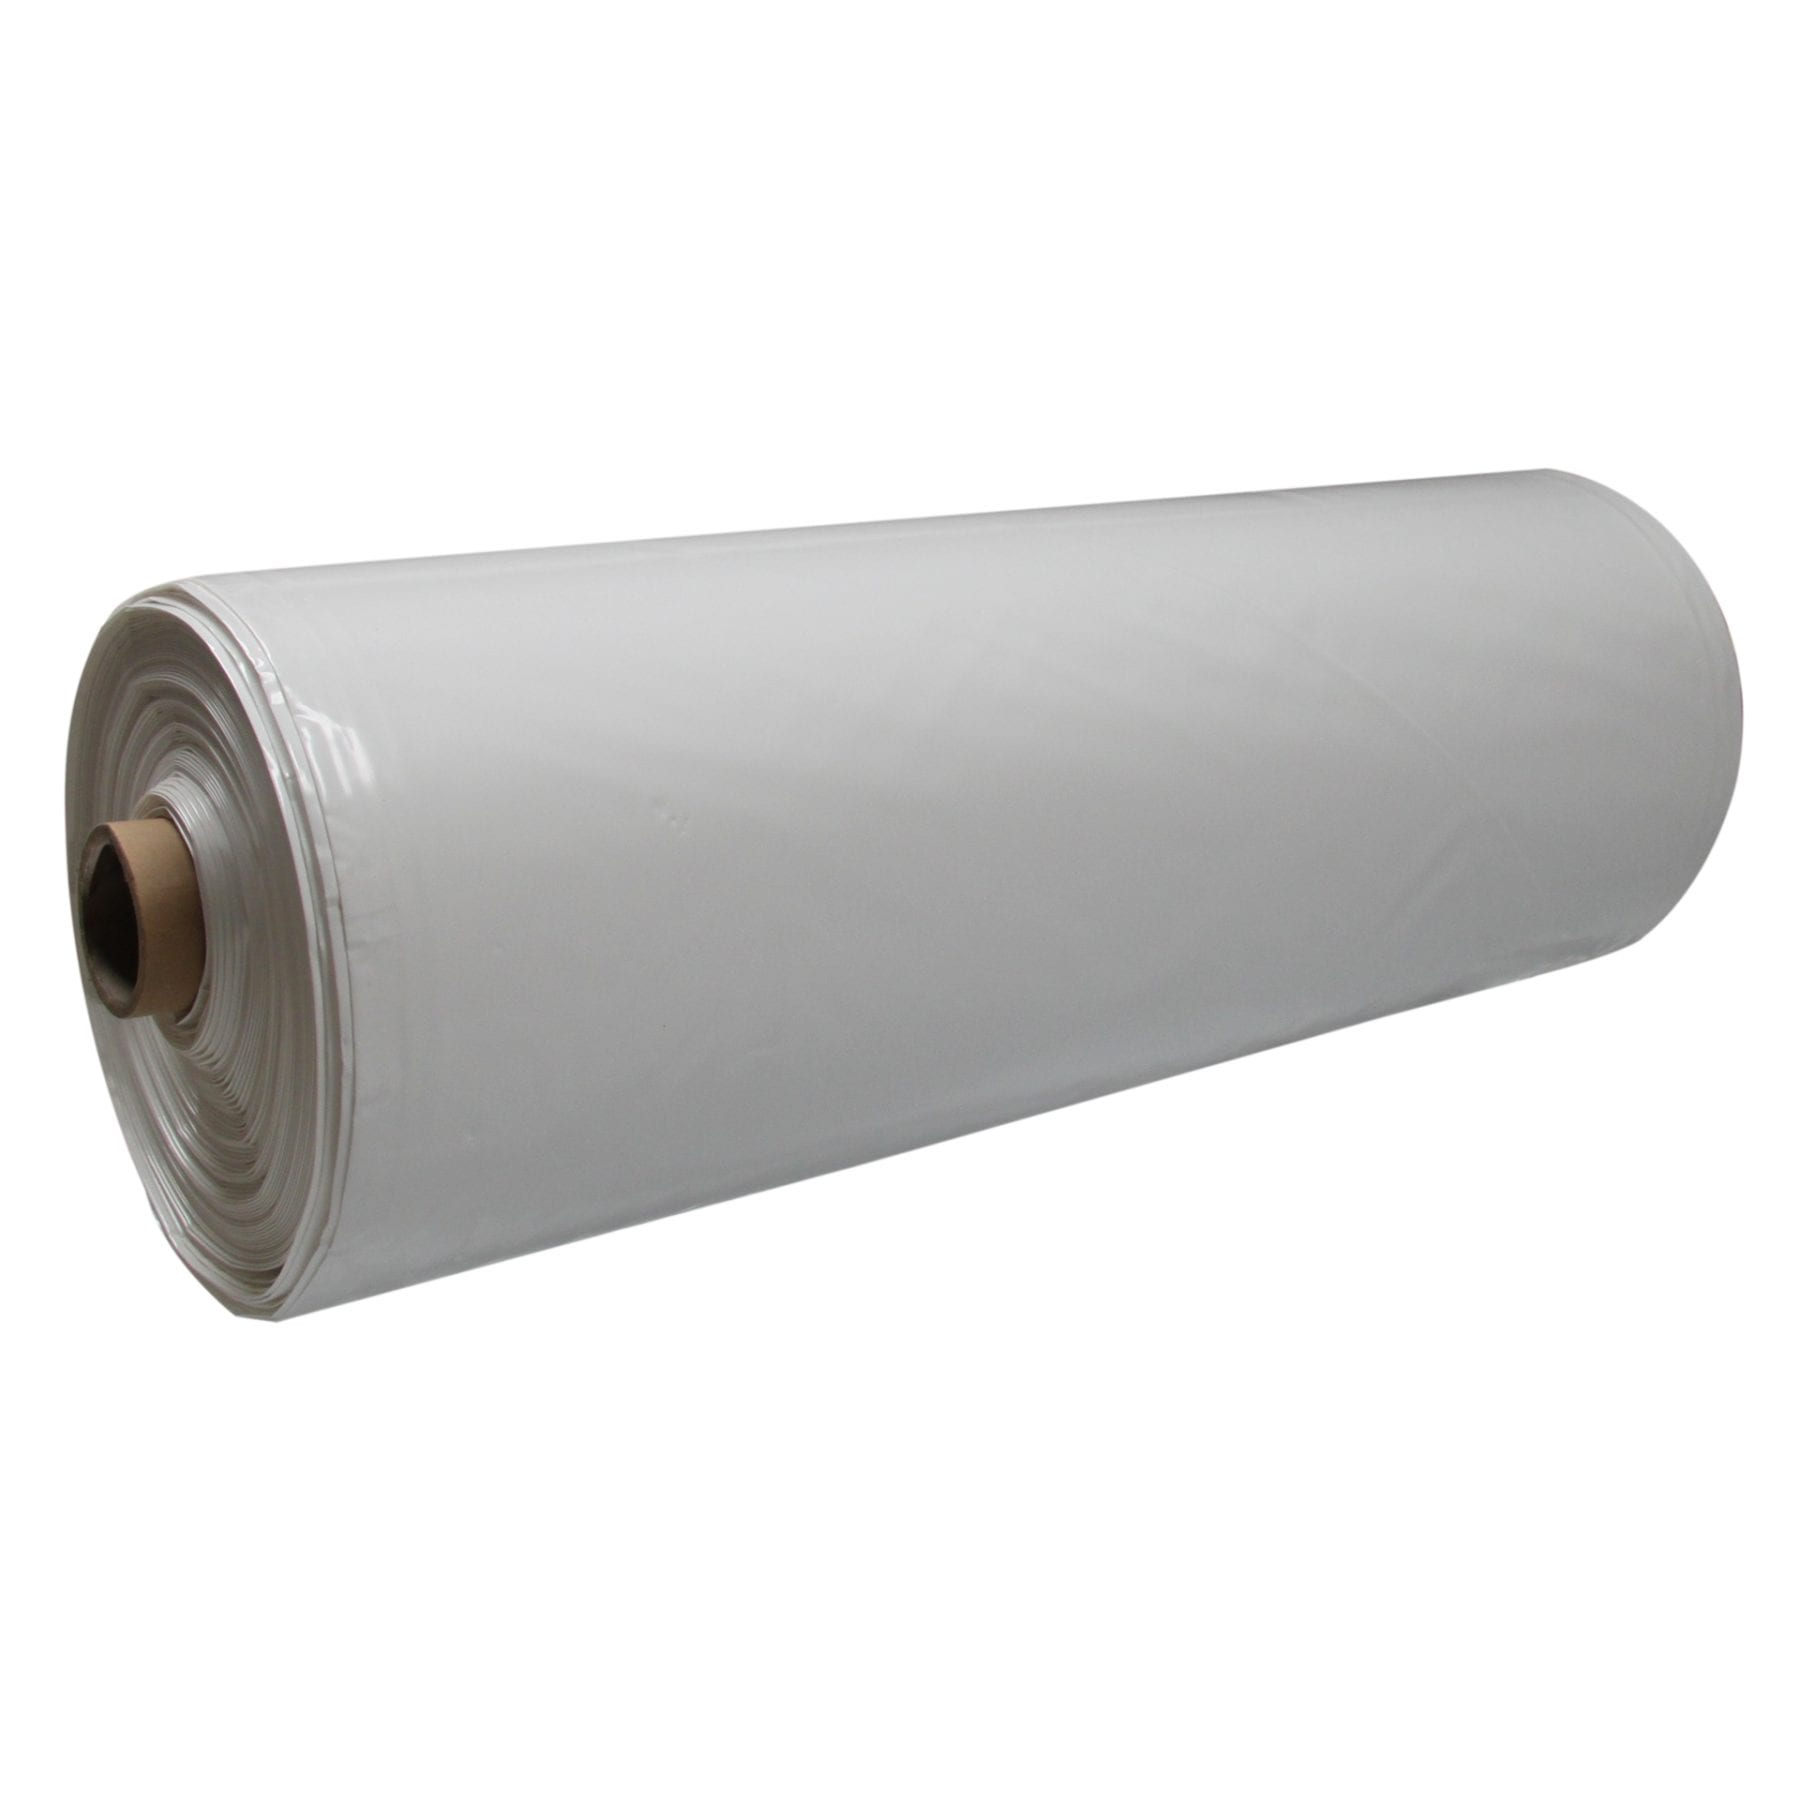 190 micron Industrial Shrink-wrap